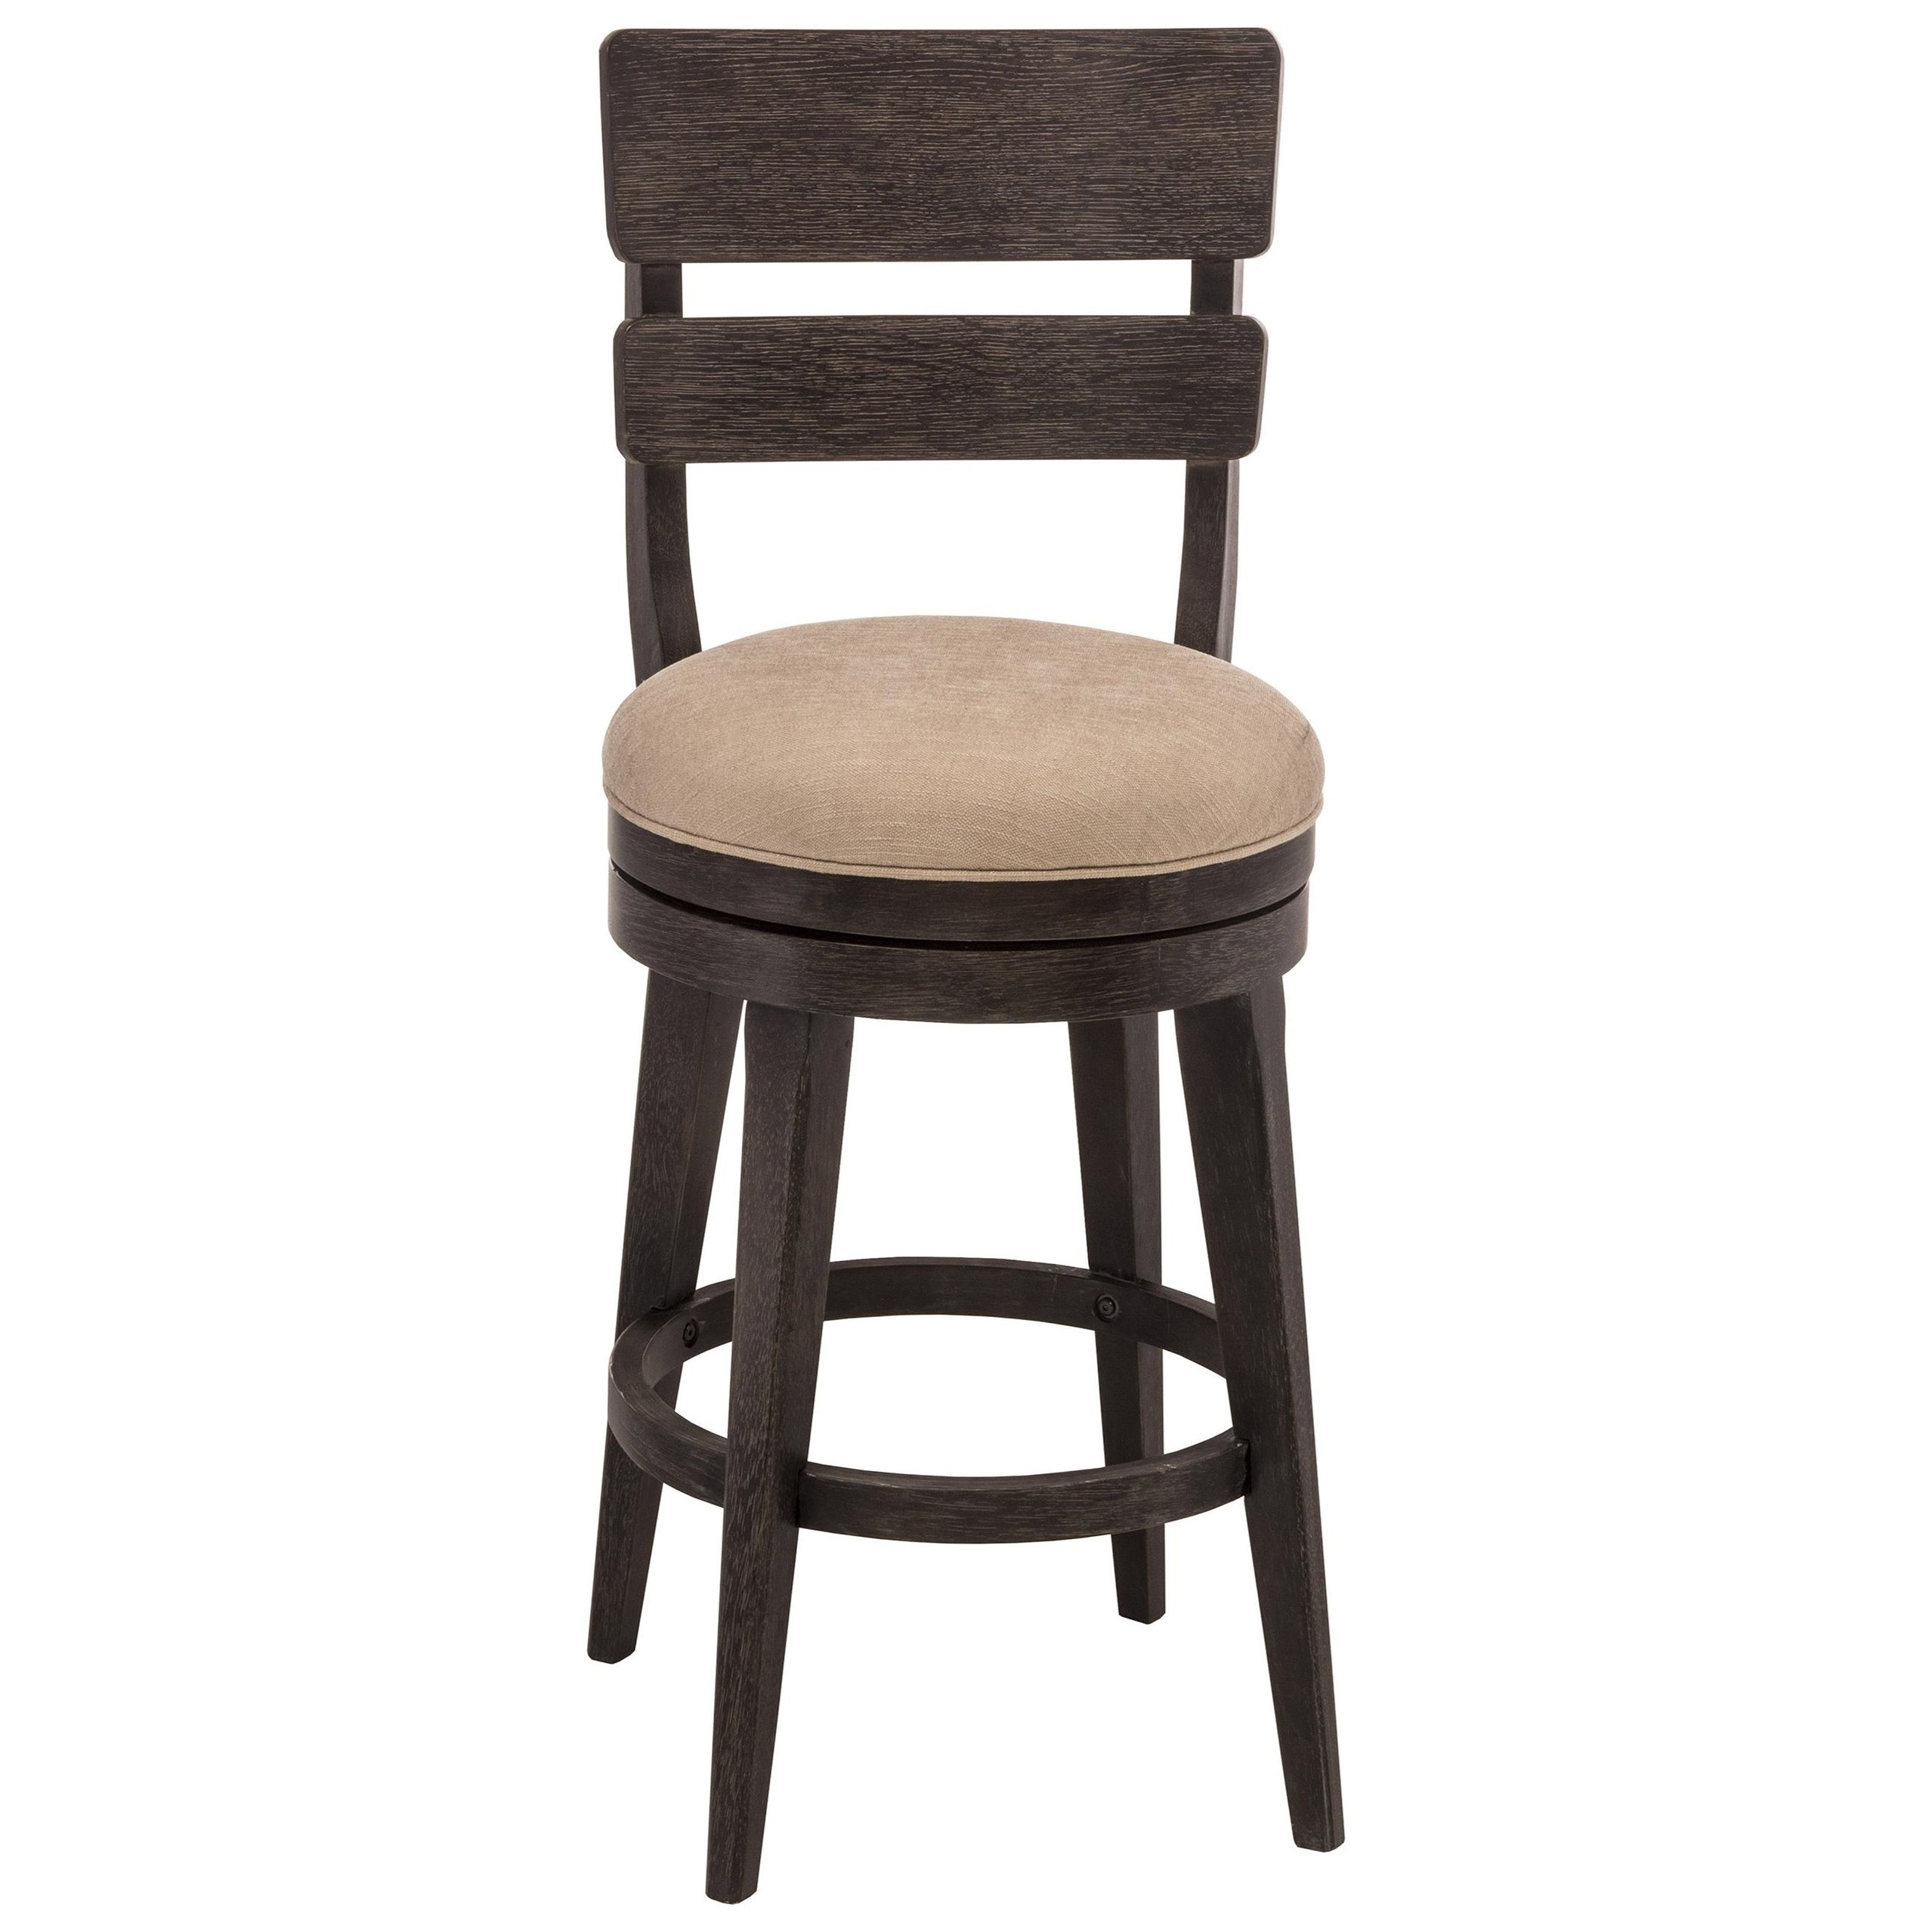 Bright Colored Bar Stools Hillsdale Wood Stools 5911 828 Upholstered Swivel Counter